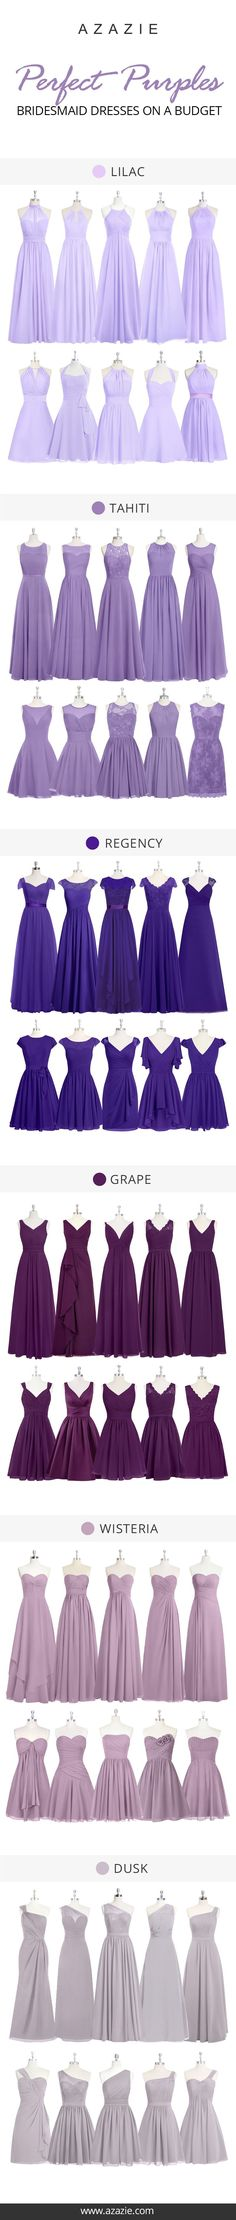 Bridesmaid dresses Azazie is the online destination for special occasion dresses. Our online boutique connects bridesmaids and brides with over 400 on-trend styles, where each is available in colors. Bridesmaid Dress Colors, Wedding Bridesmaid Dresses, Wedding Attire, Wedding Gowns, Wisteria Bridesmaid Dresses, Wedding Bands, Burgundy Bridesmaid, Wedding Ceremony, Purple Wedding